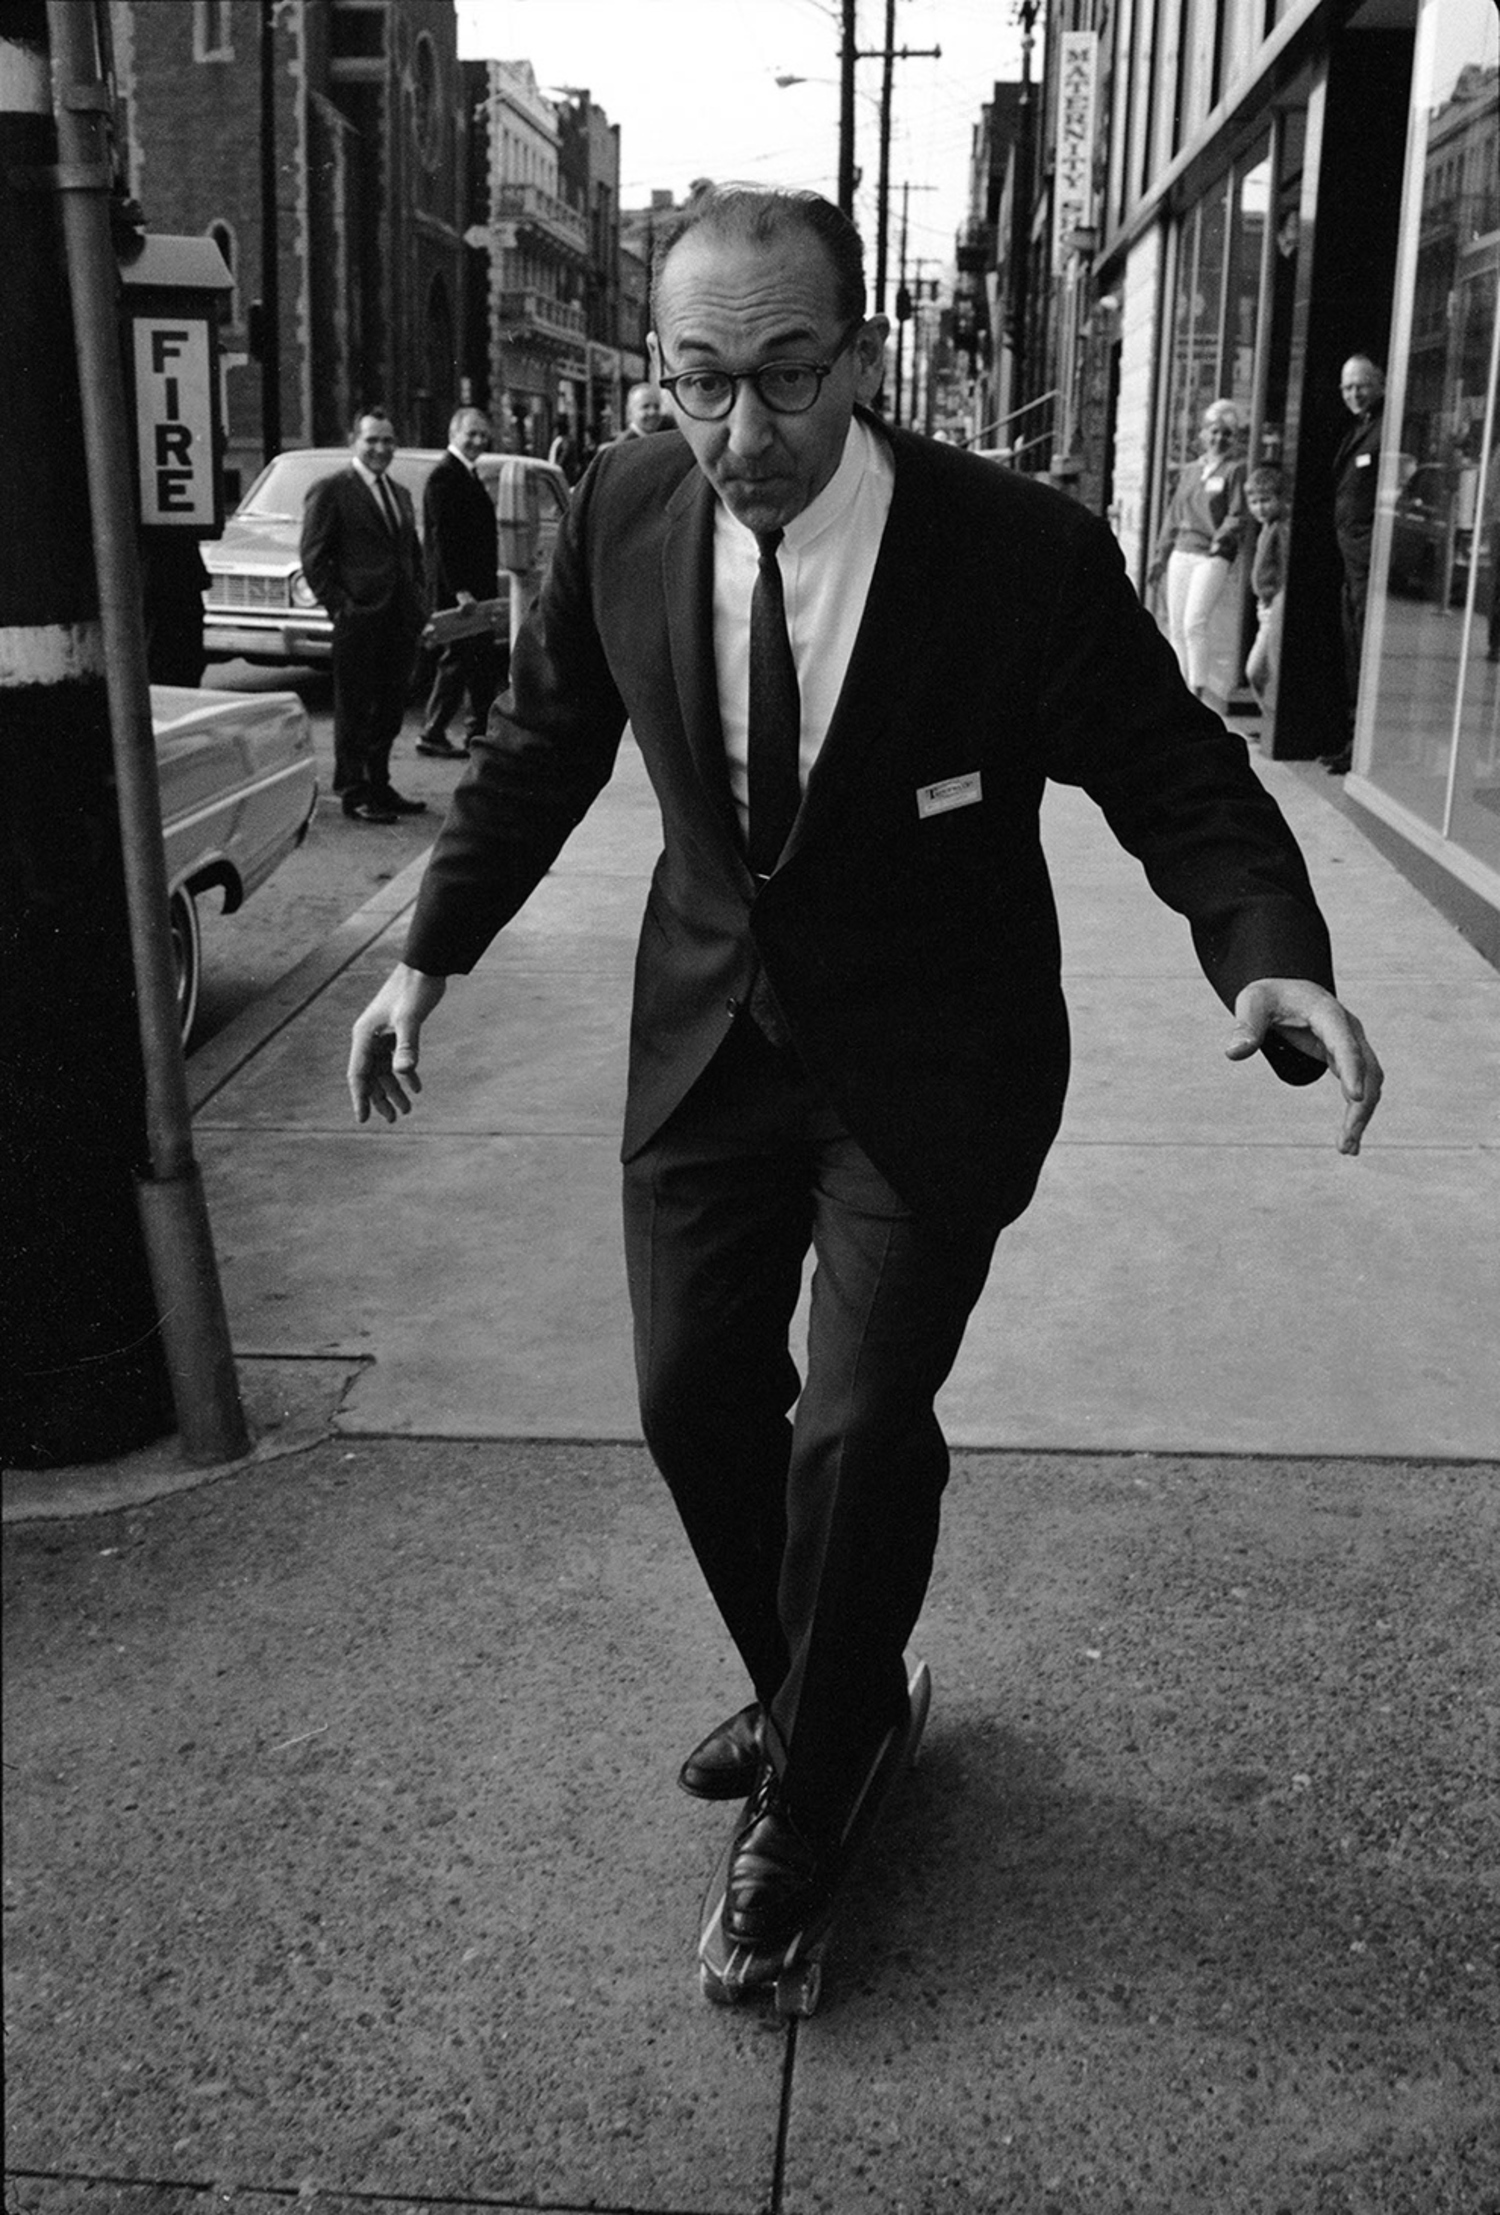 A well-dressed man cruises down the streets of New York, breaking hearts as he goes.